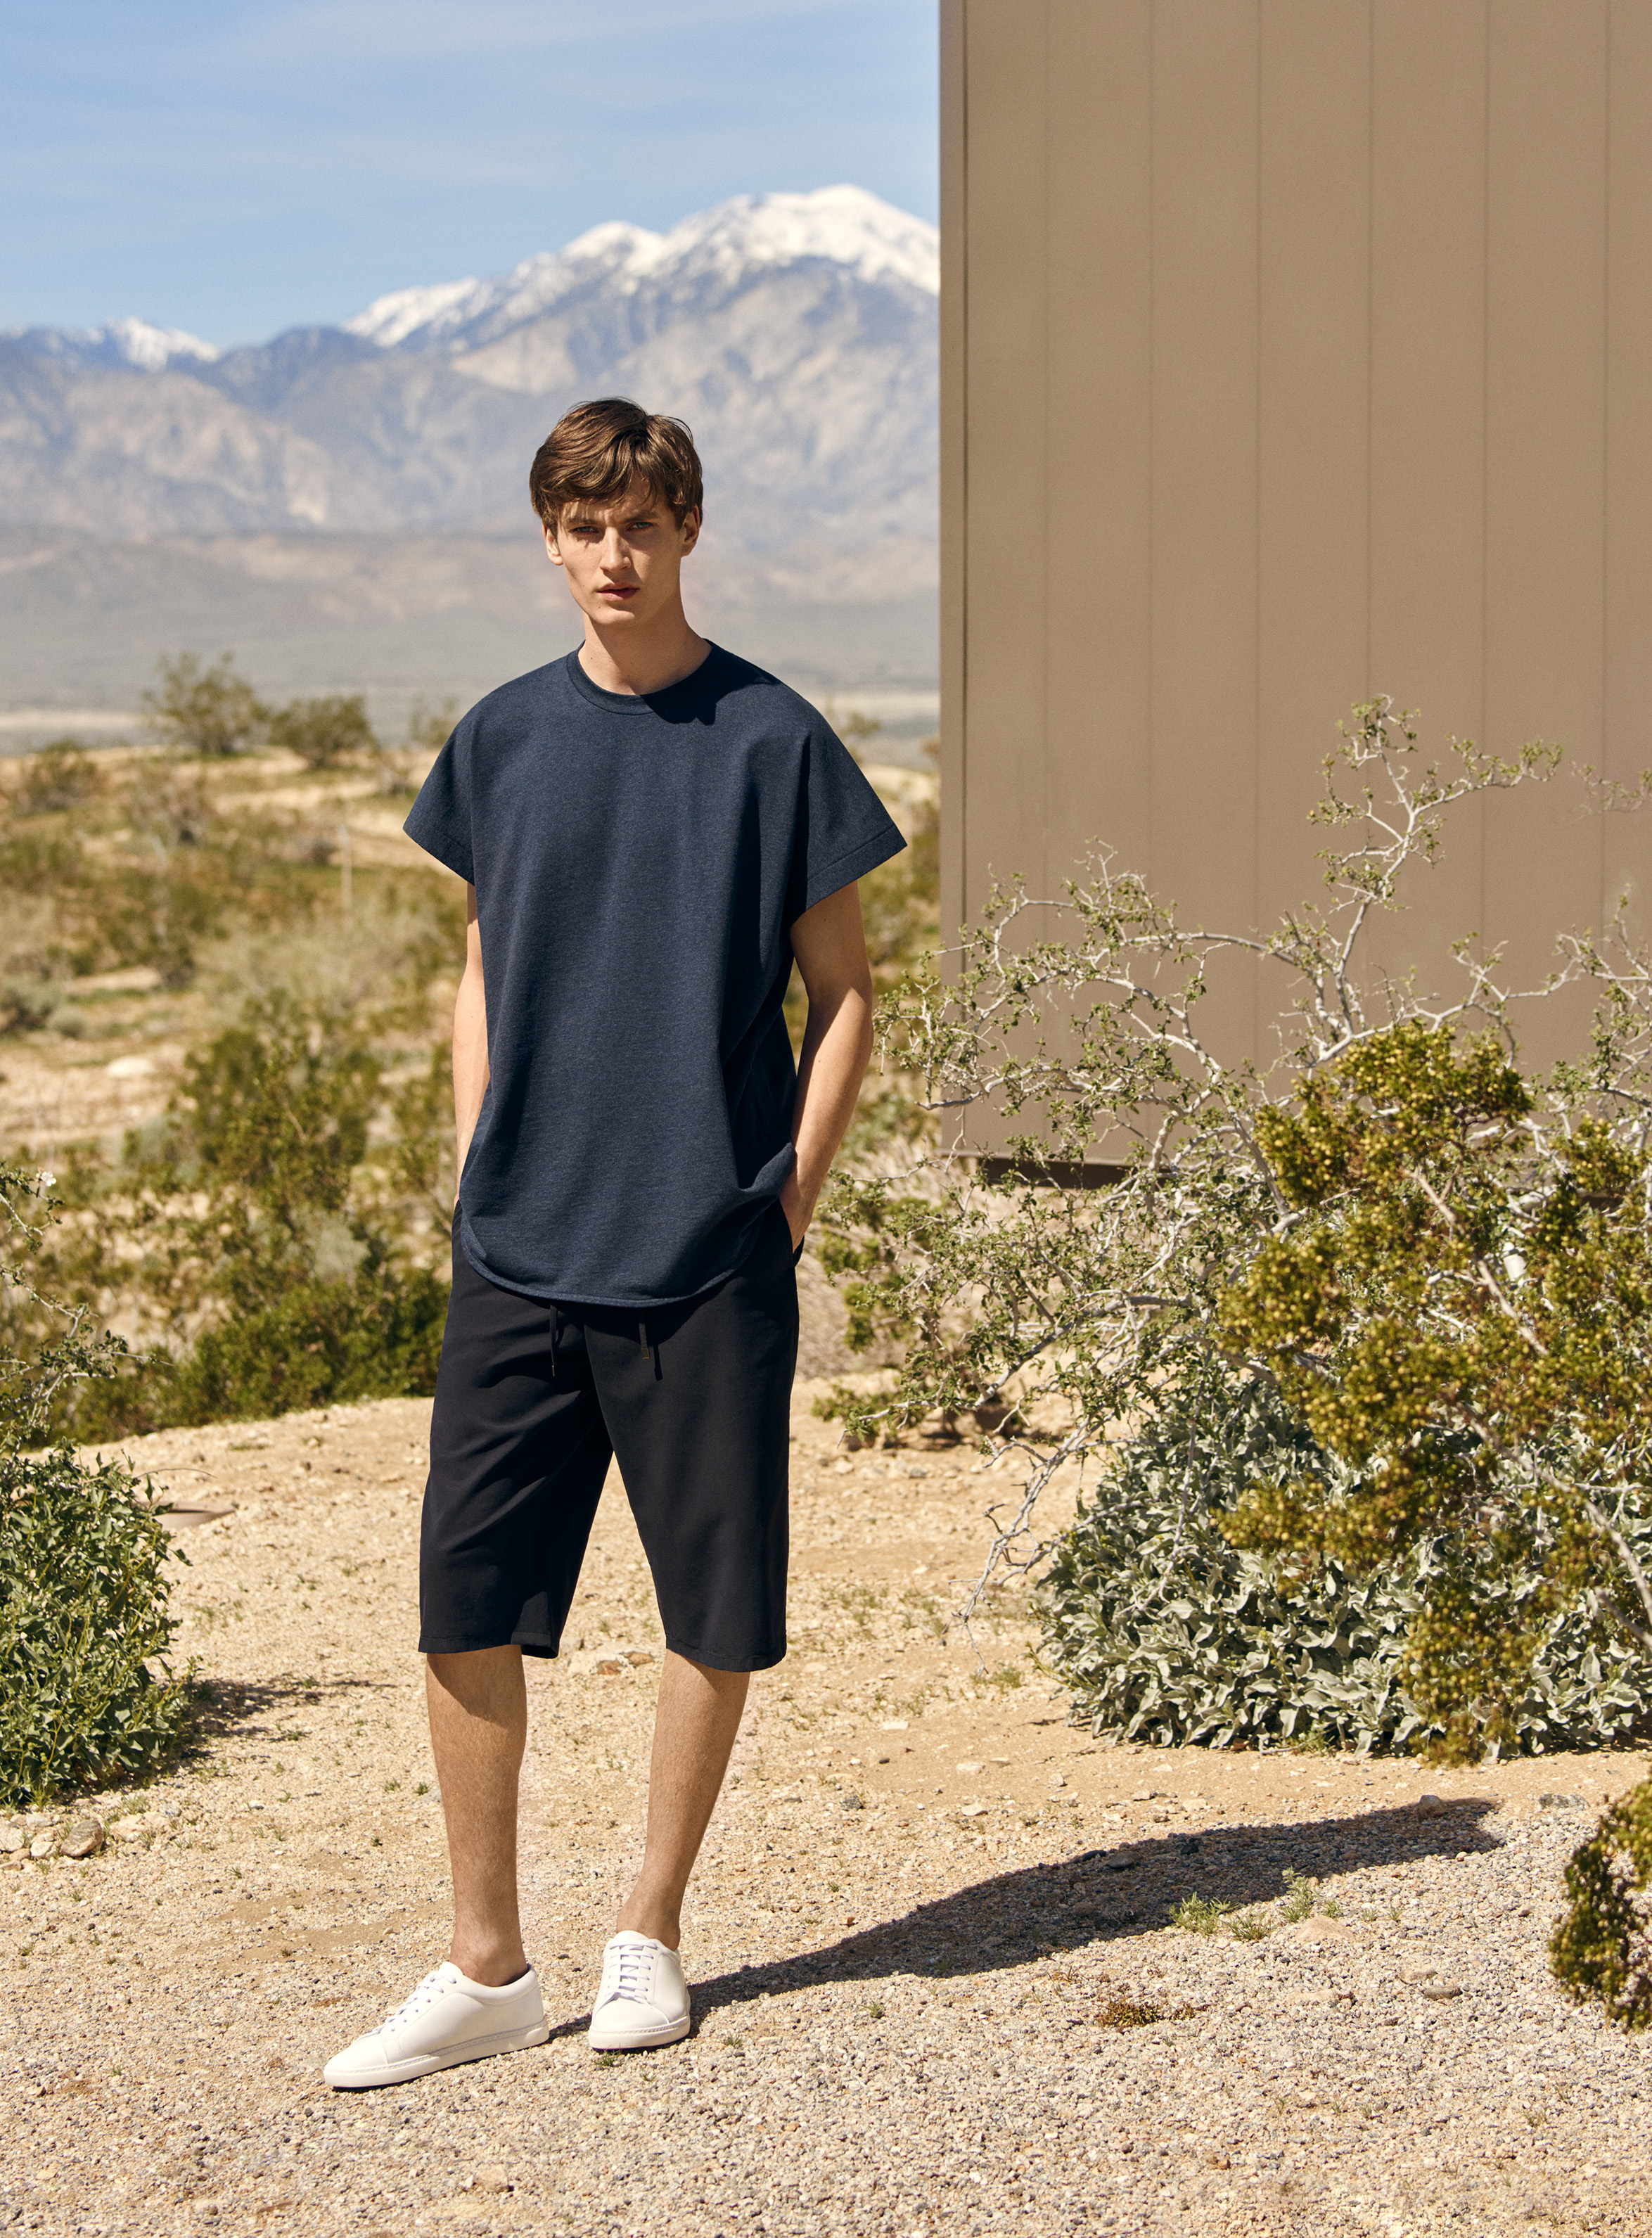 Oversized round-neck t-shirt (39€) + Drawstring twill shorts (59€) + Lace-up sneakers (89€)